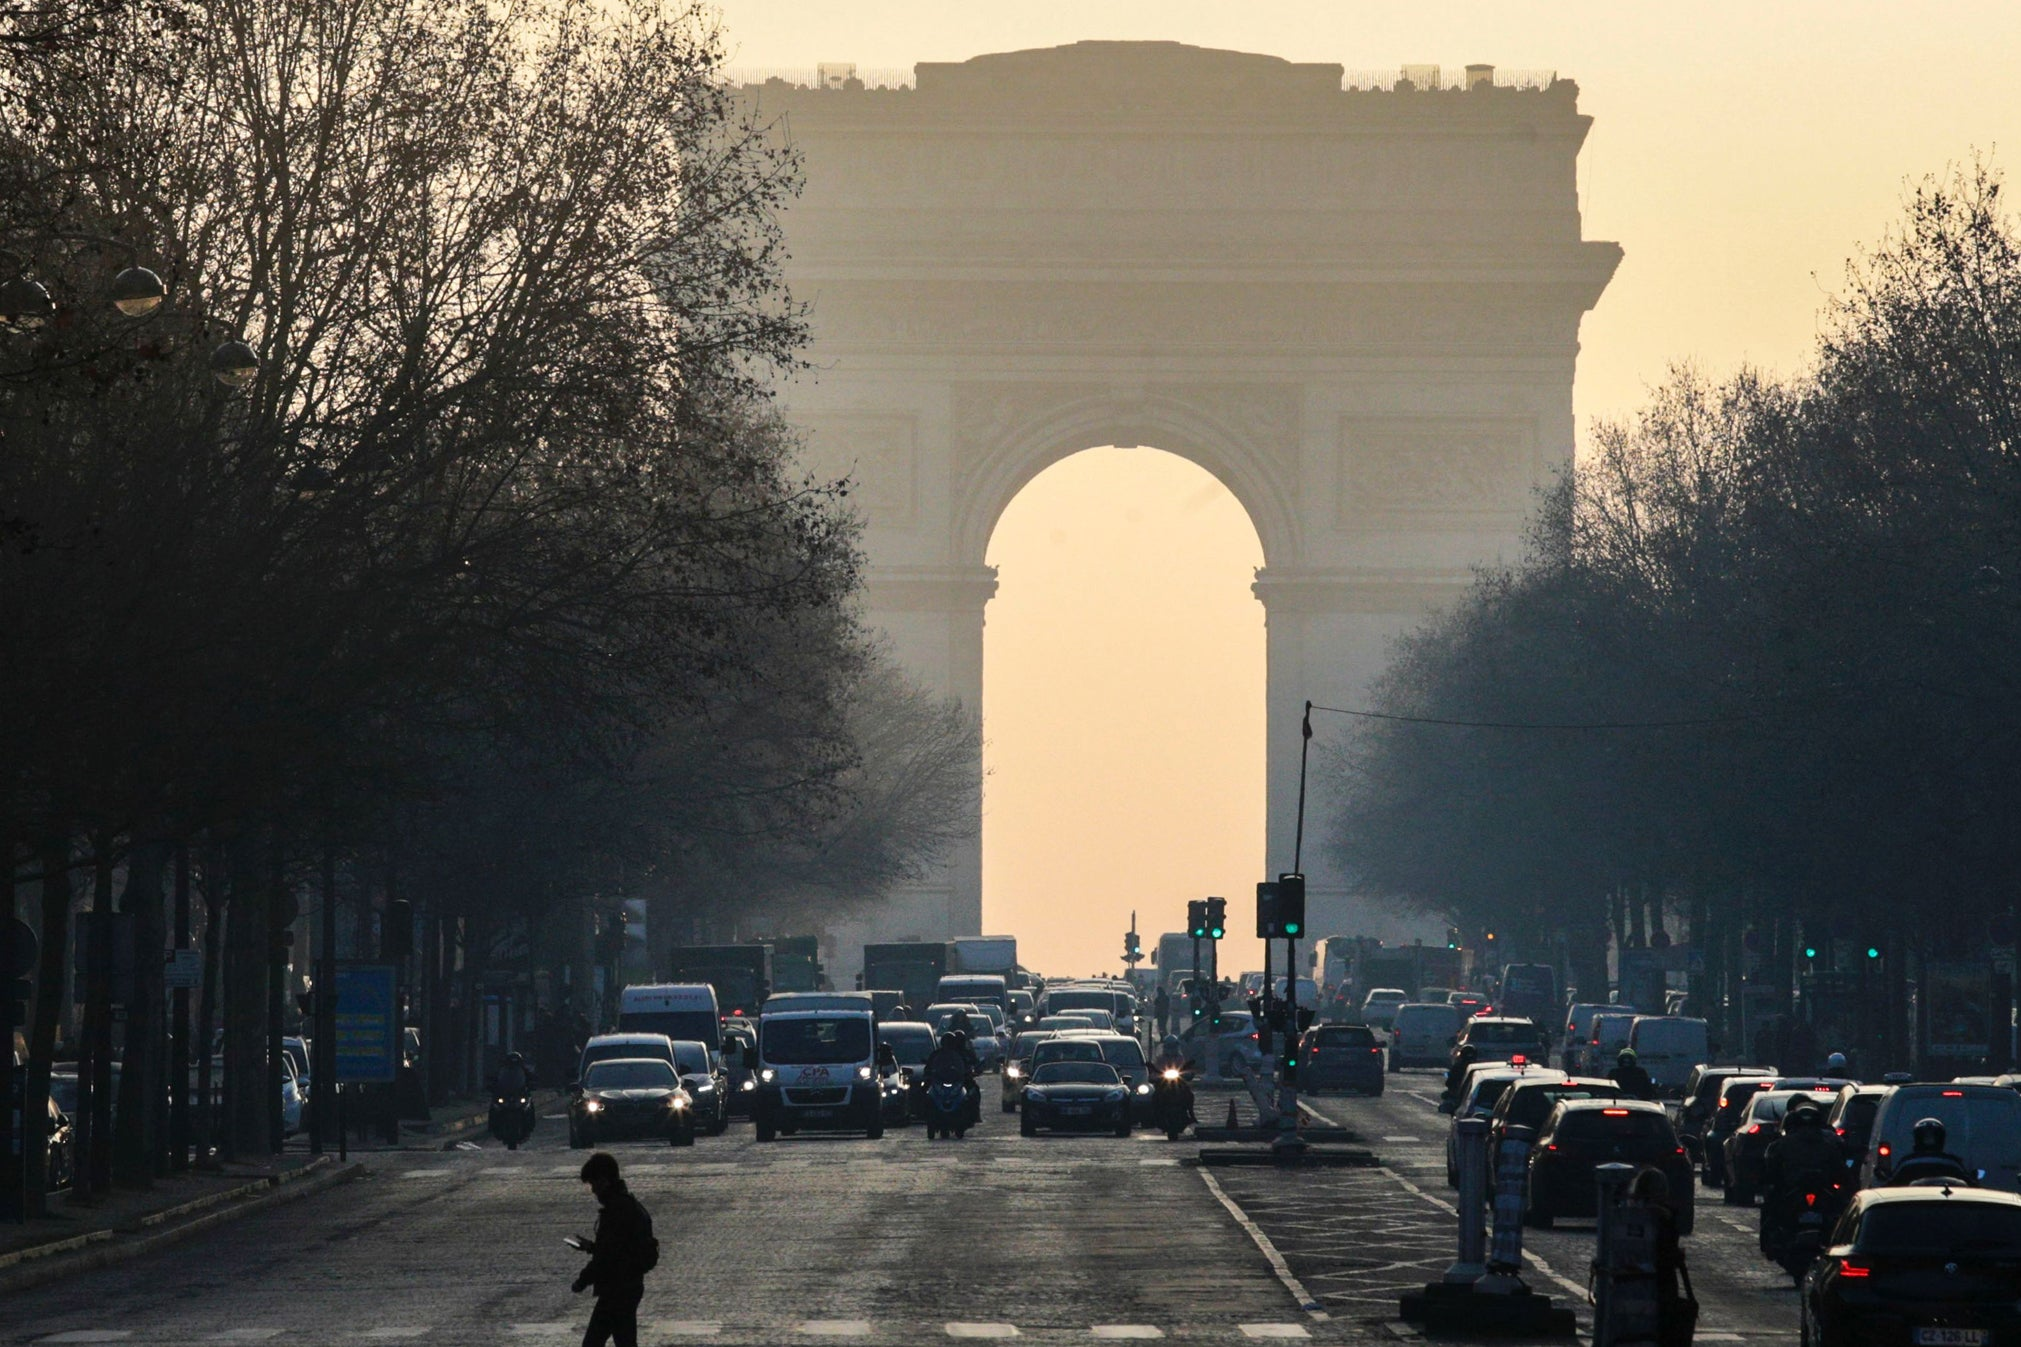 France is banning all petrol and diesel vehicles